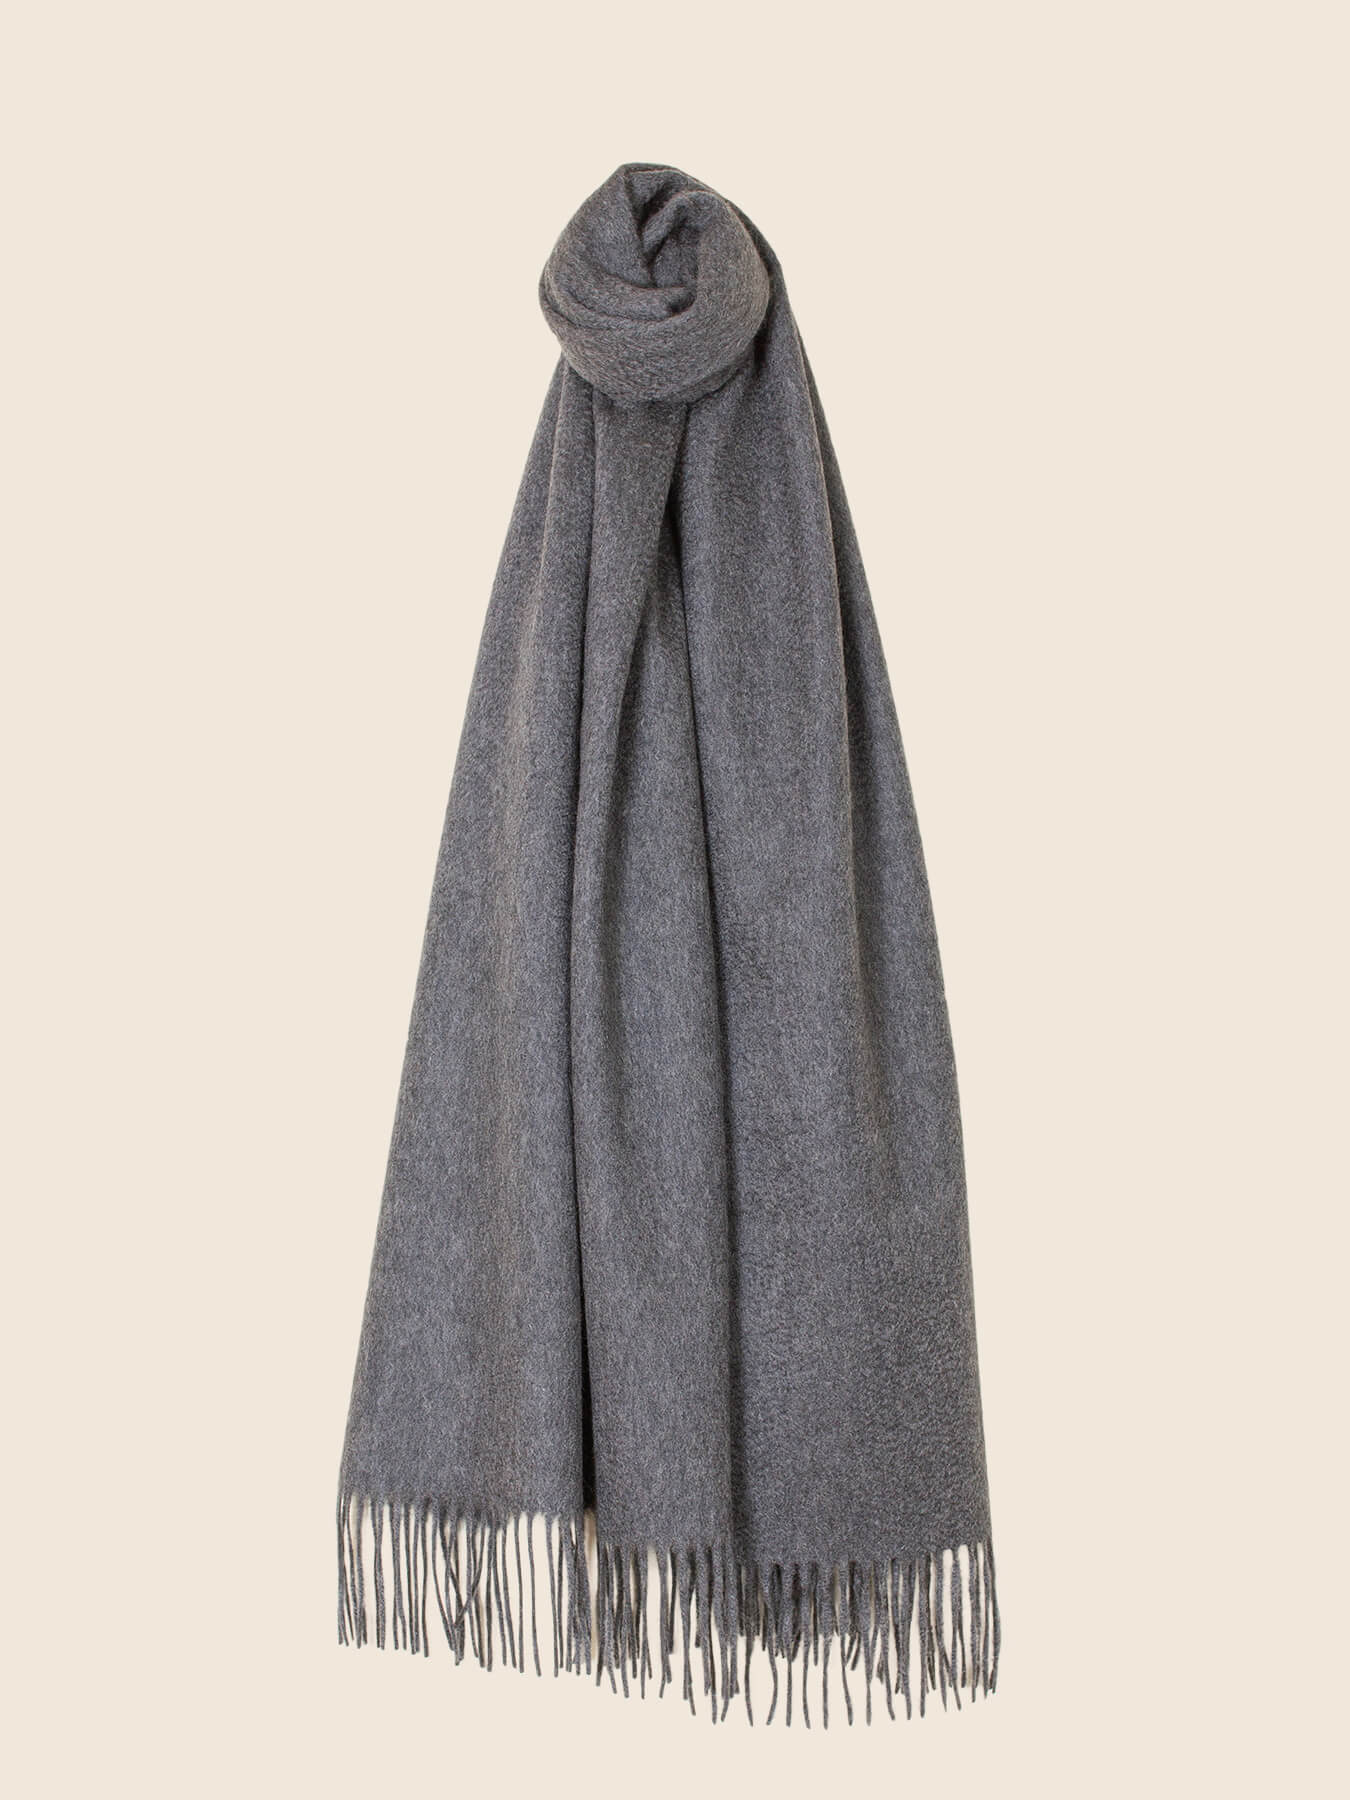 Staple Plain Cashmere Shawl Grey 2